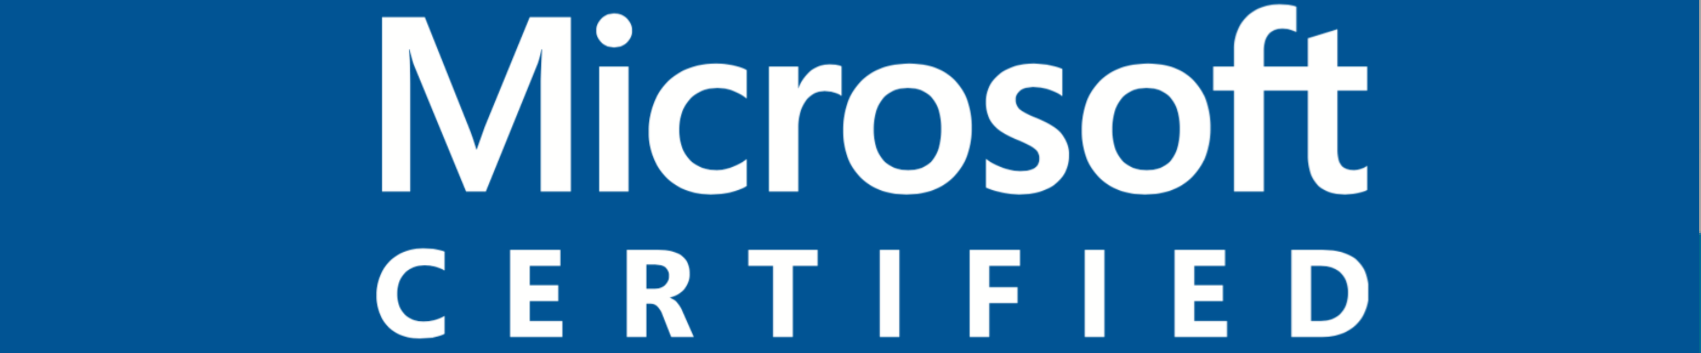 Microsoft_Certified_Banner